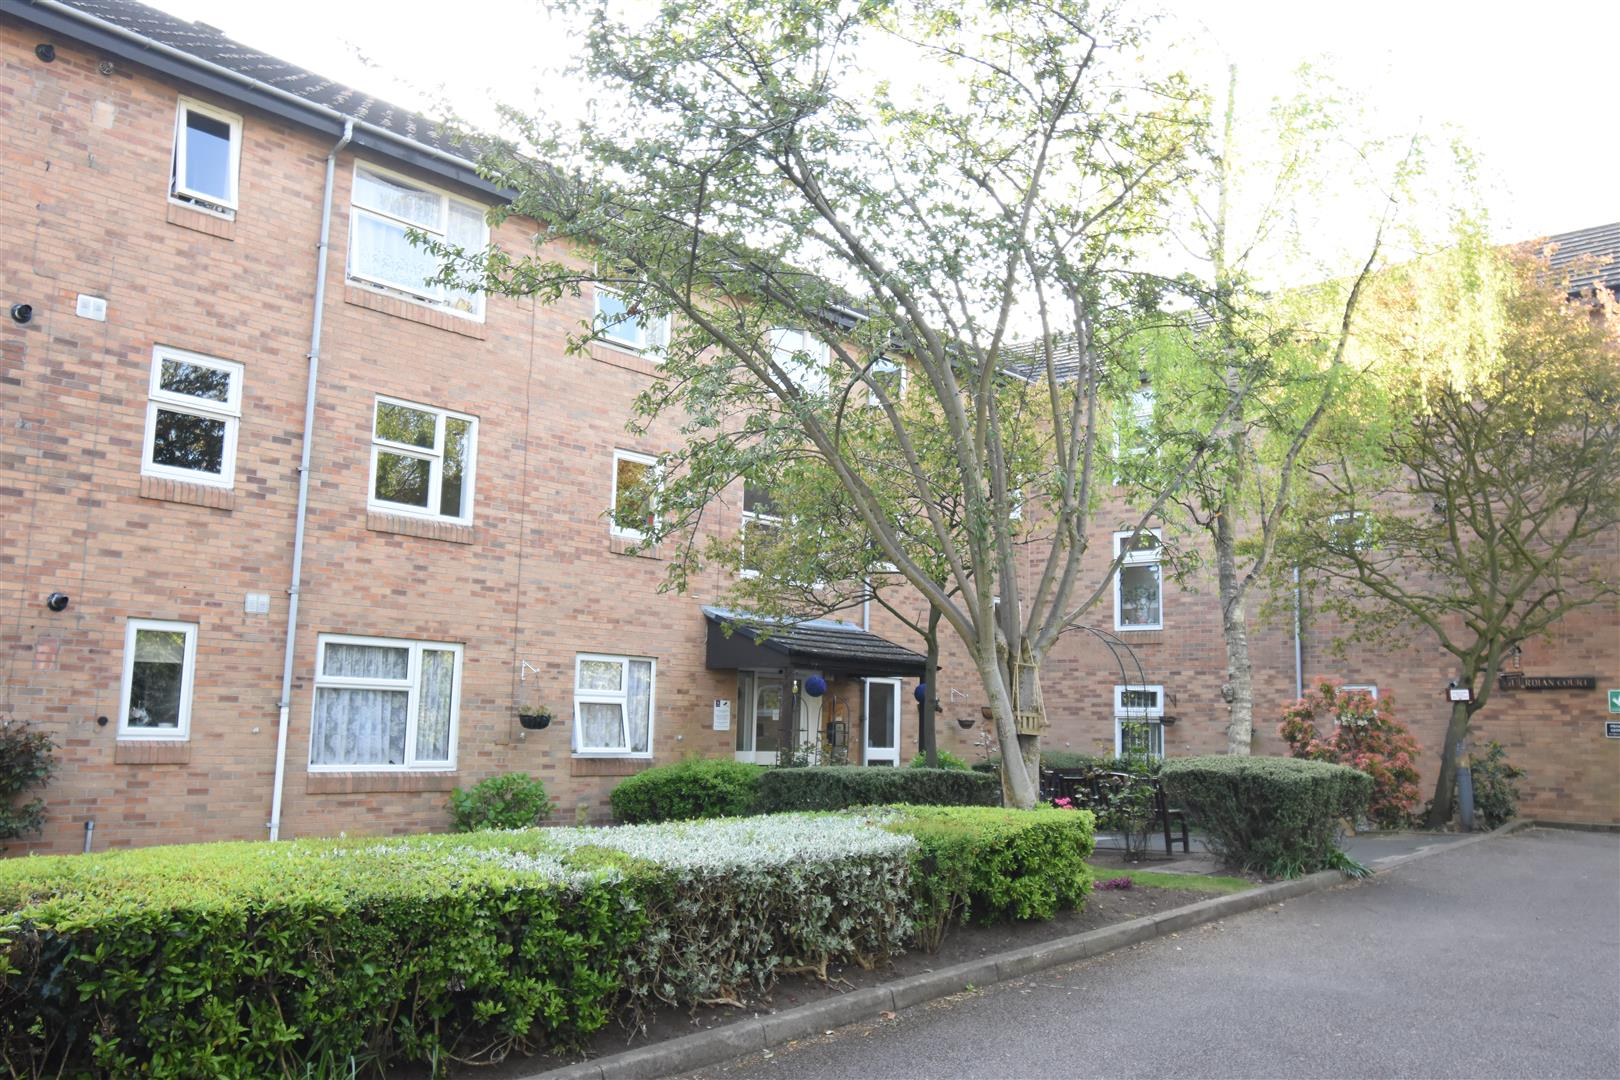 1 bed flat for sale in Moat Lane, Yardley, Birmingham - Property Image 1